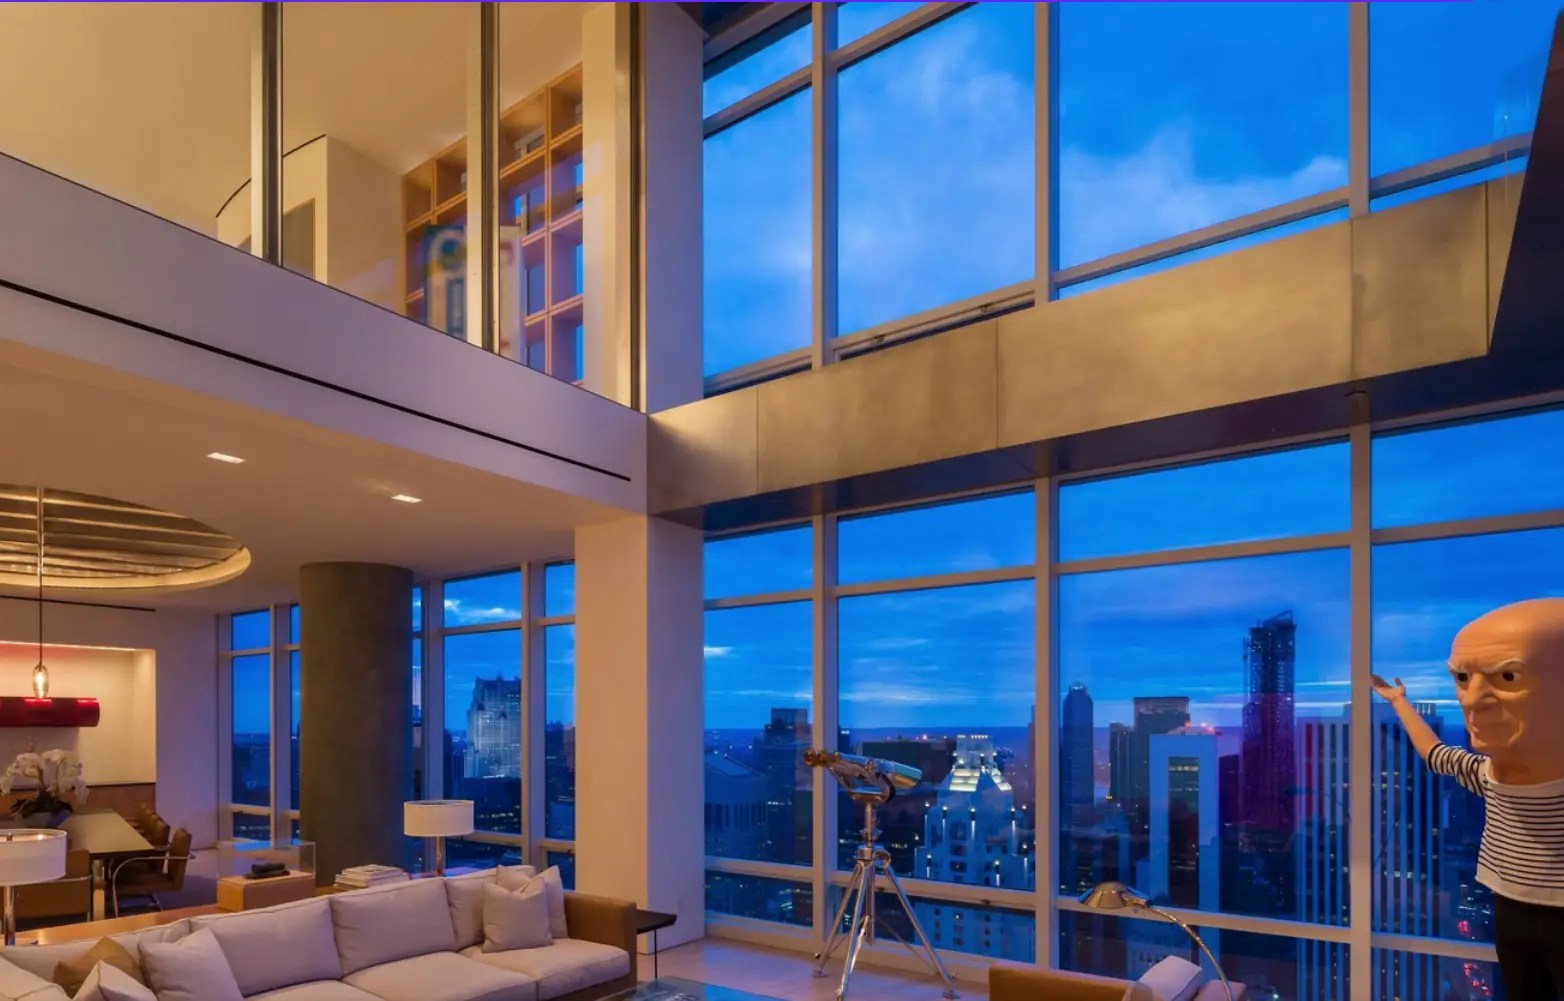 #3 Financier Steve Cohen listed his Upper East Side duplex penthouse for $115 million in April. The 9,000 square foot, 6 bedroom, 6.5 bathroom apartment at One Beacon Court was designed by famed architect Charles Gwathmey.